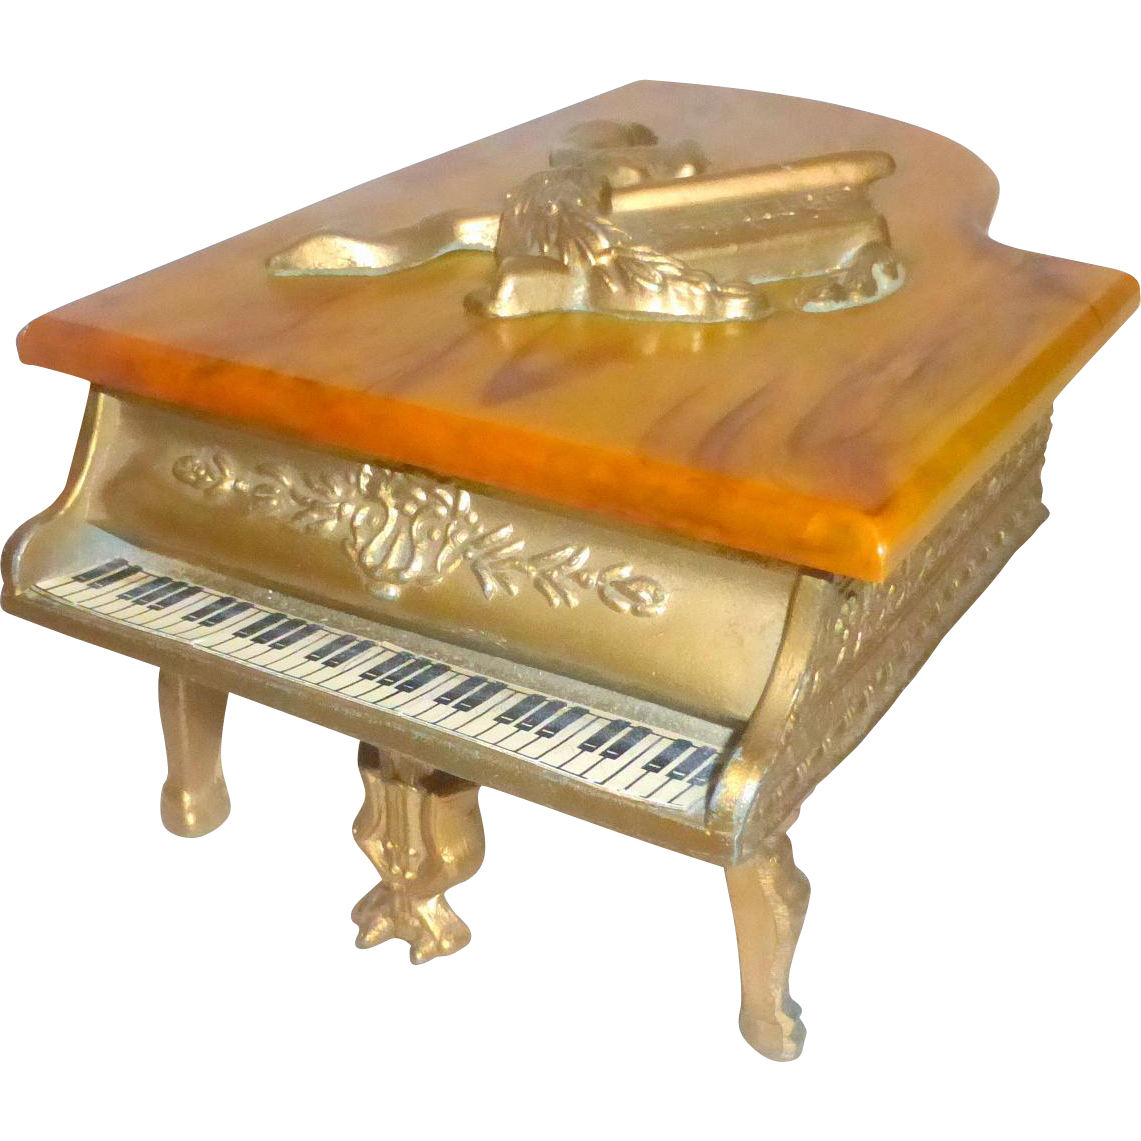 Vintage 1940's Harry Snider Bakelite and Metal Music & Trinket Box Grand Piano